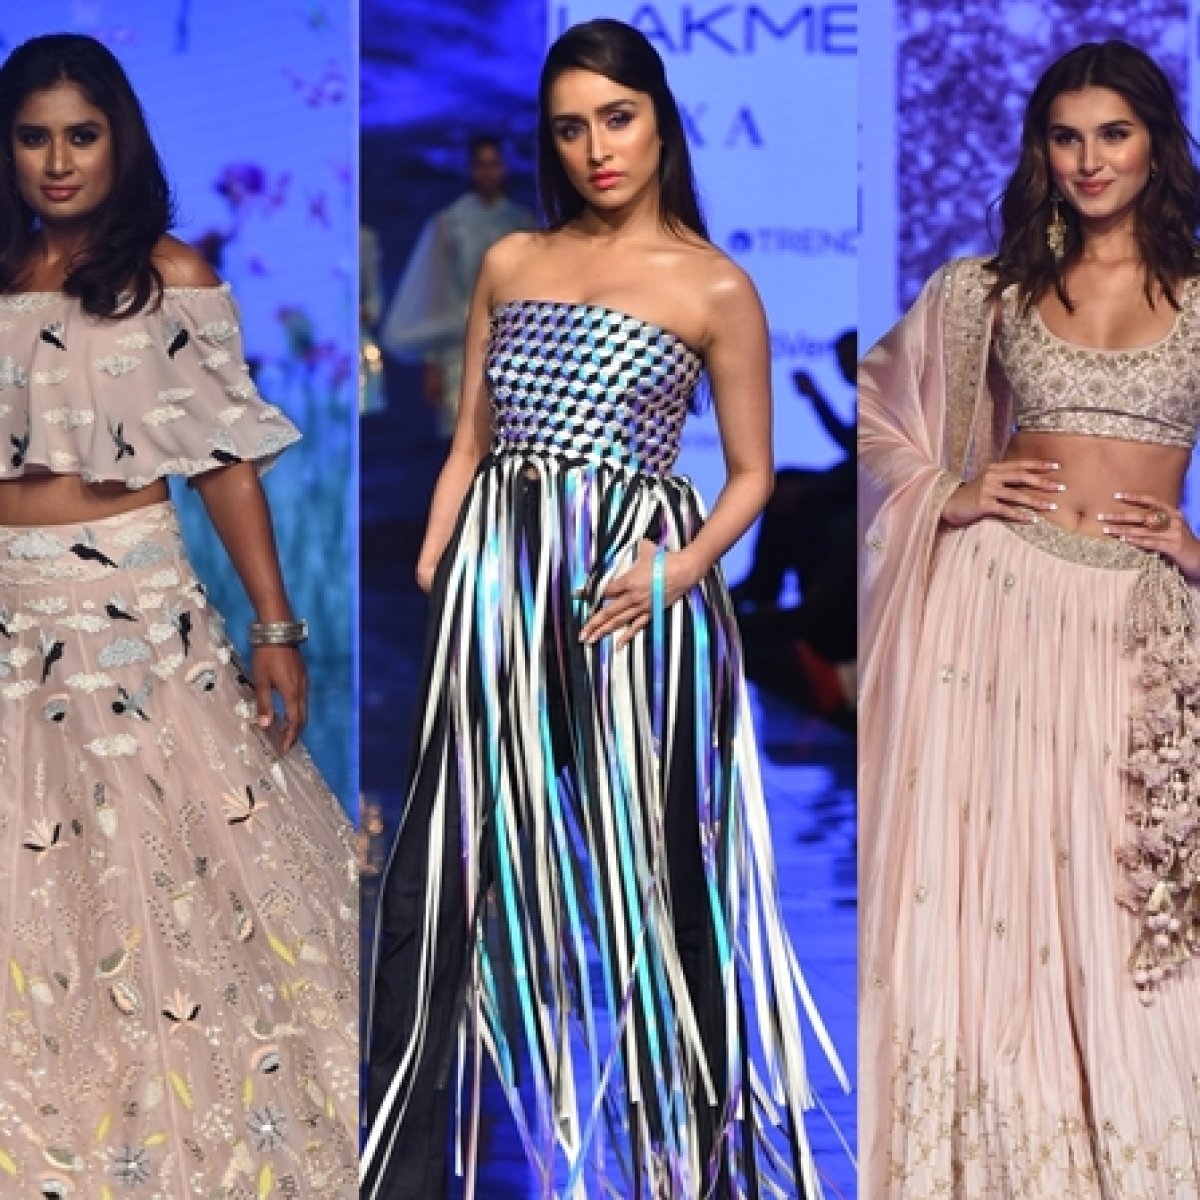 Some misses, many hits - Day 4 at Lakme Fashion Week Summer/Resort 2020 proved to be a mixed bag